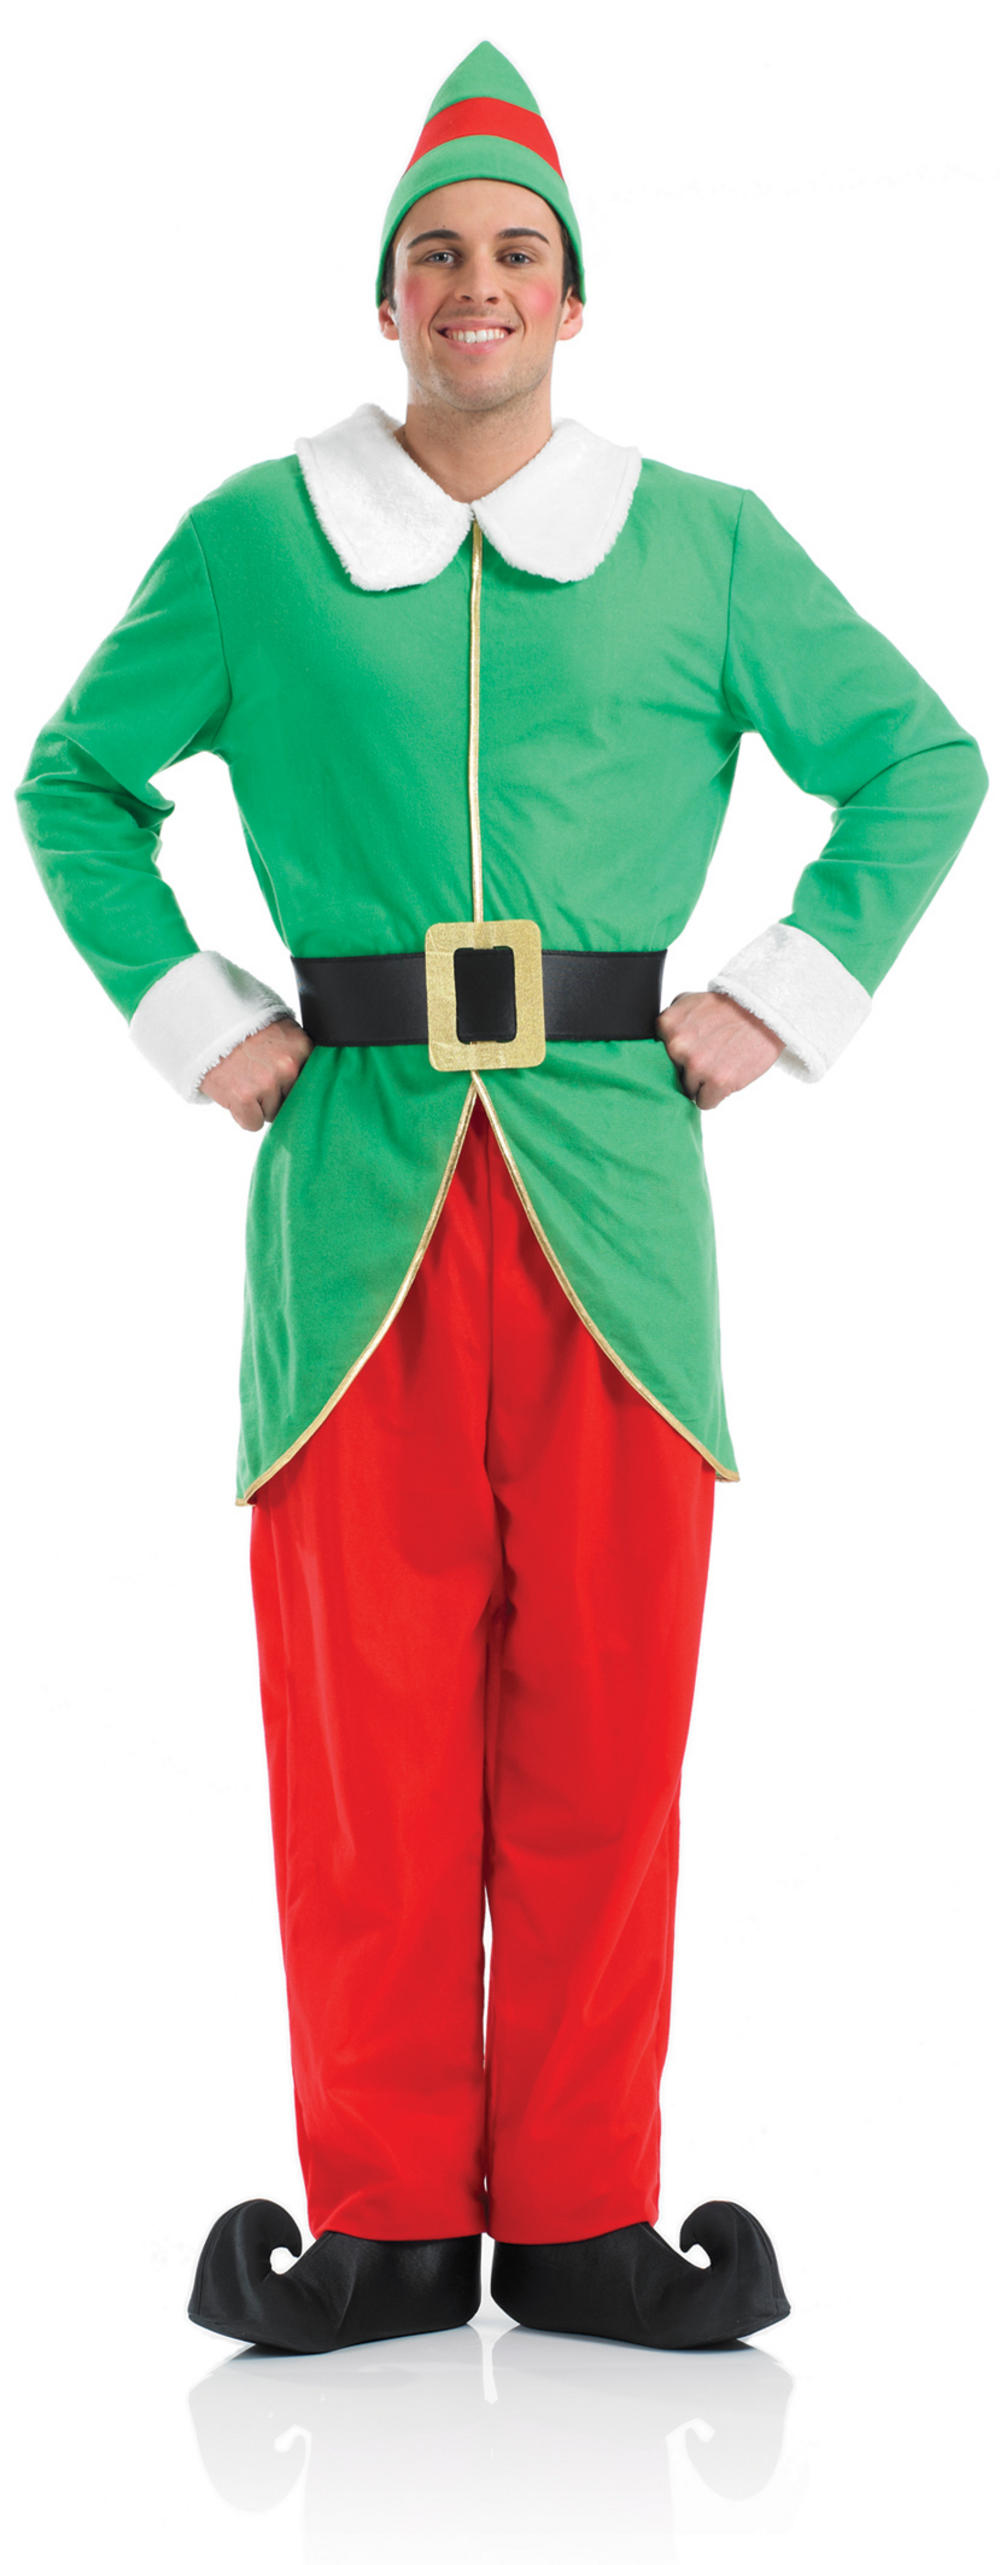 Green Elf Costume  sc 1 st  Mega Fancy Dress & Green Elf Costume | Christmas Clearance | Mega Fancy Dress